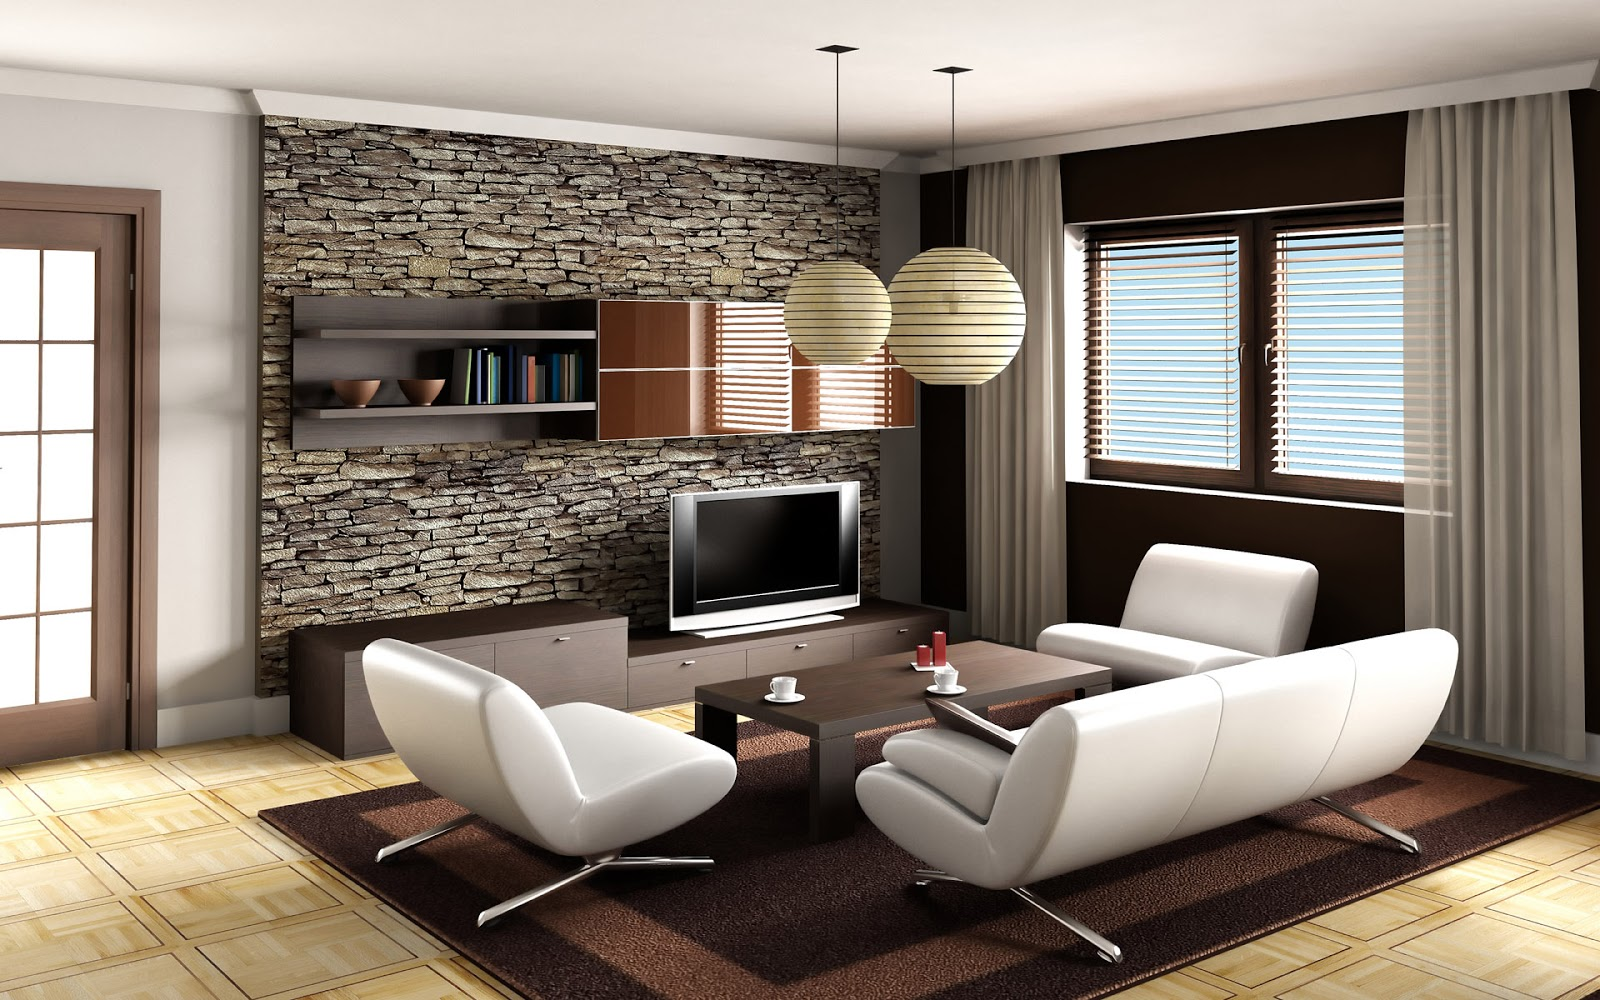 Arrangement of luxury living room ideas dream house for Minimalist room design ideas